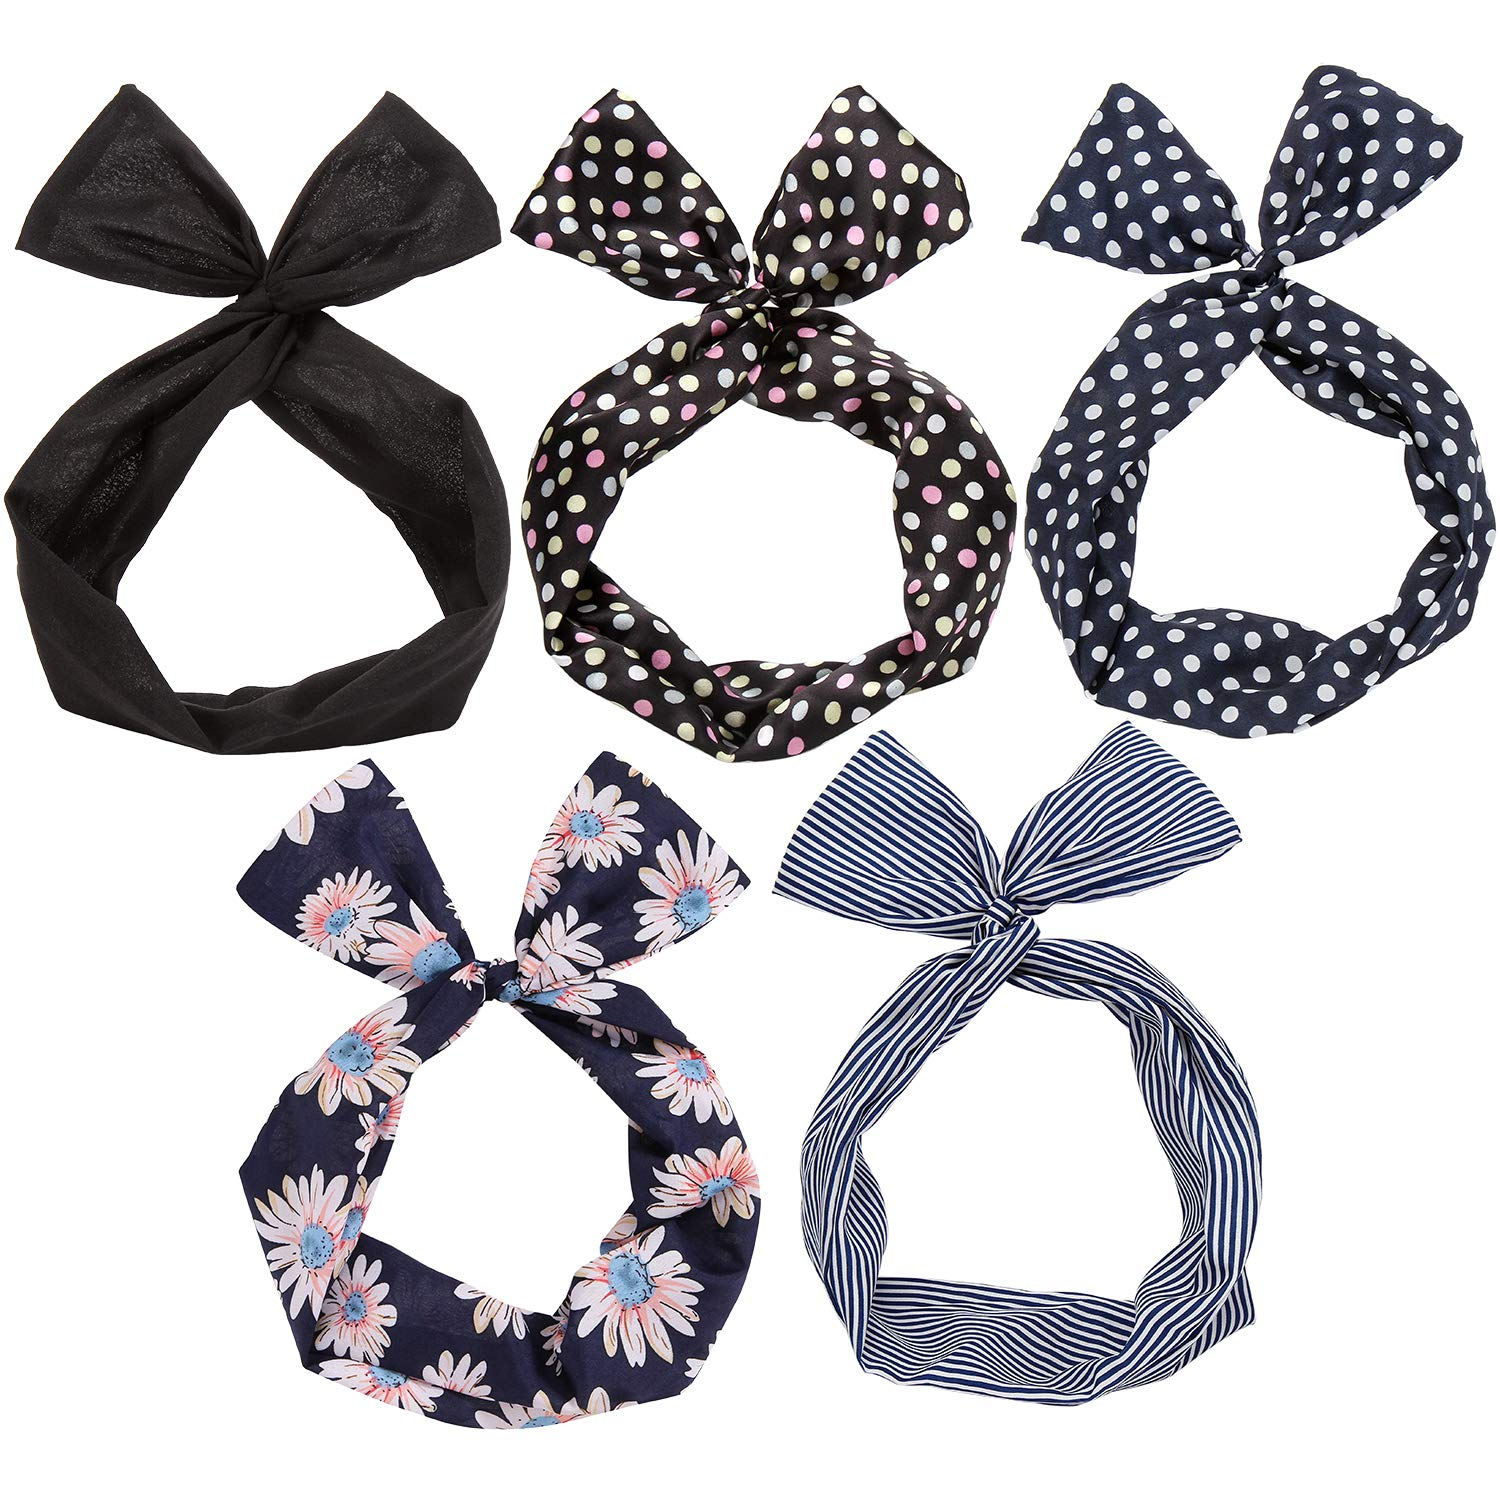 Twist Bow Wired Headbands Scarf Wrap Hair Accessory Hairband by Sea Team 5 Packs